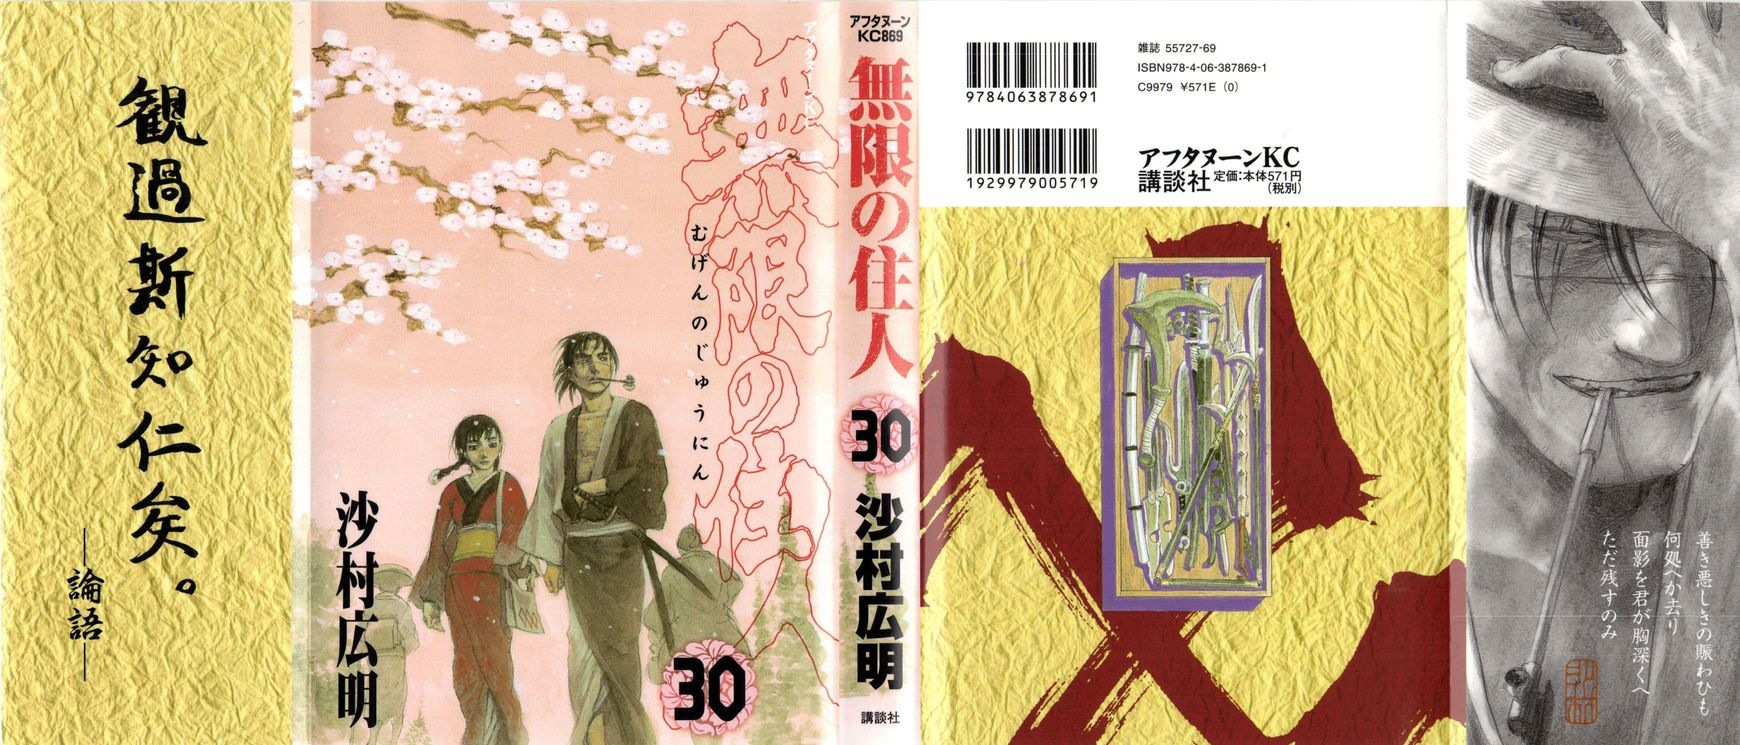 Blade of the Immortal 211 Page 1